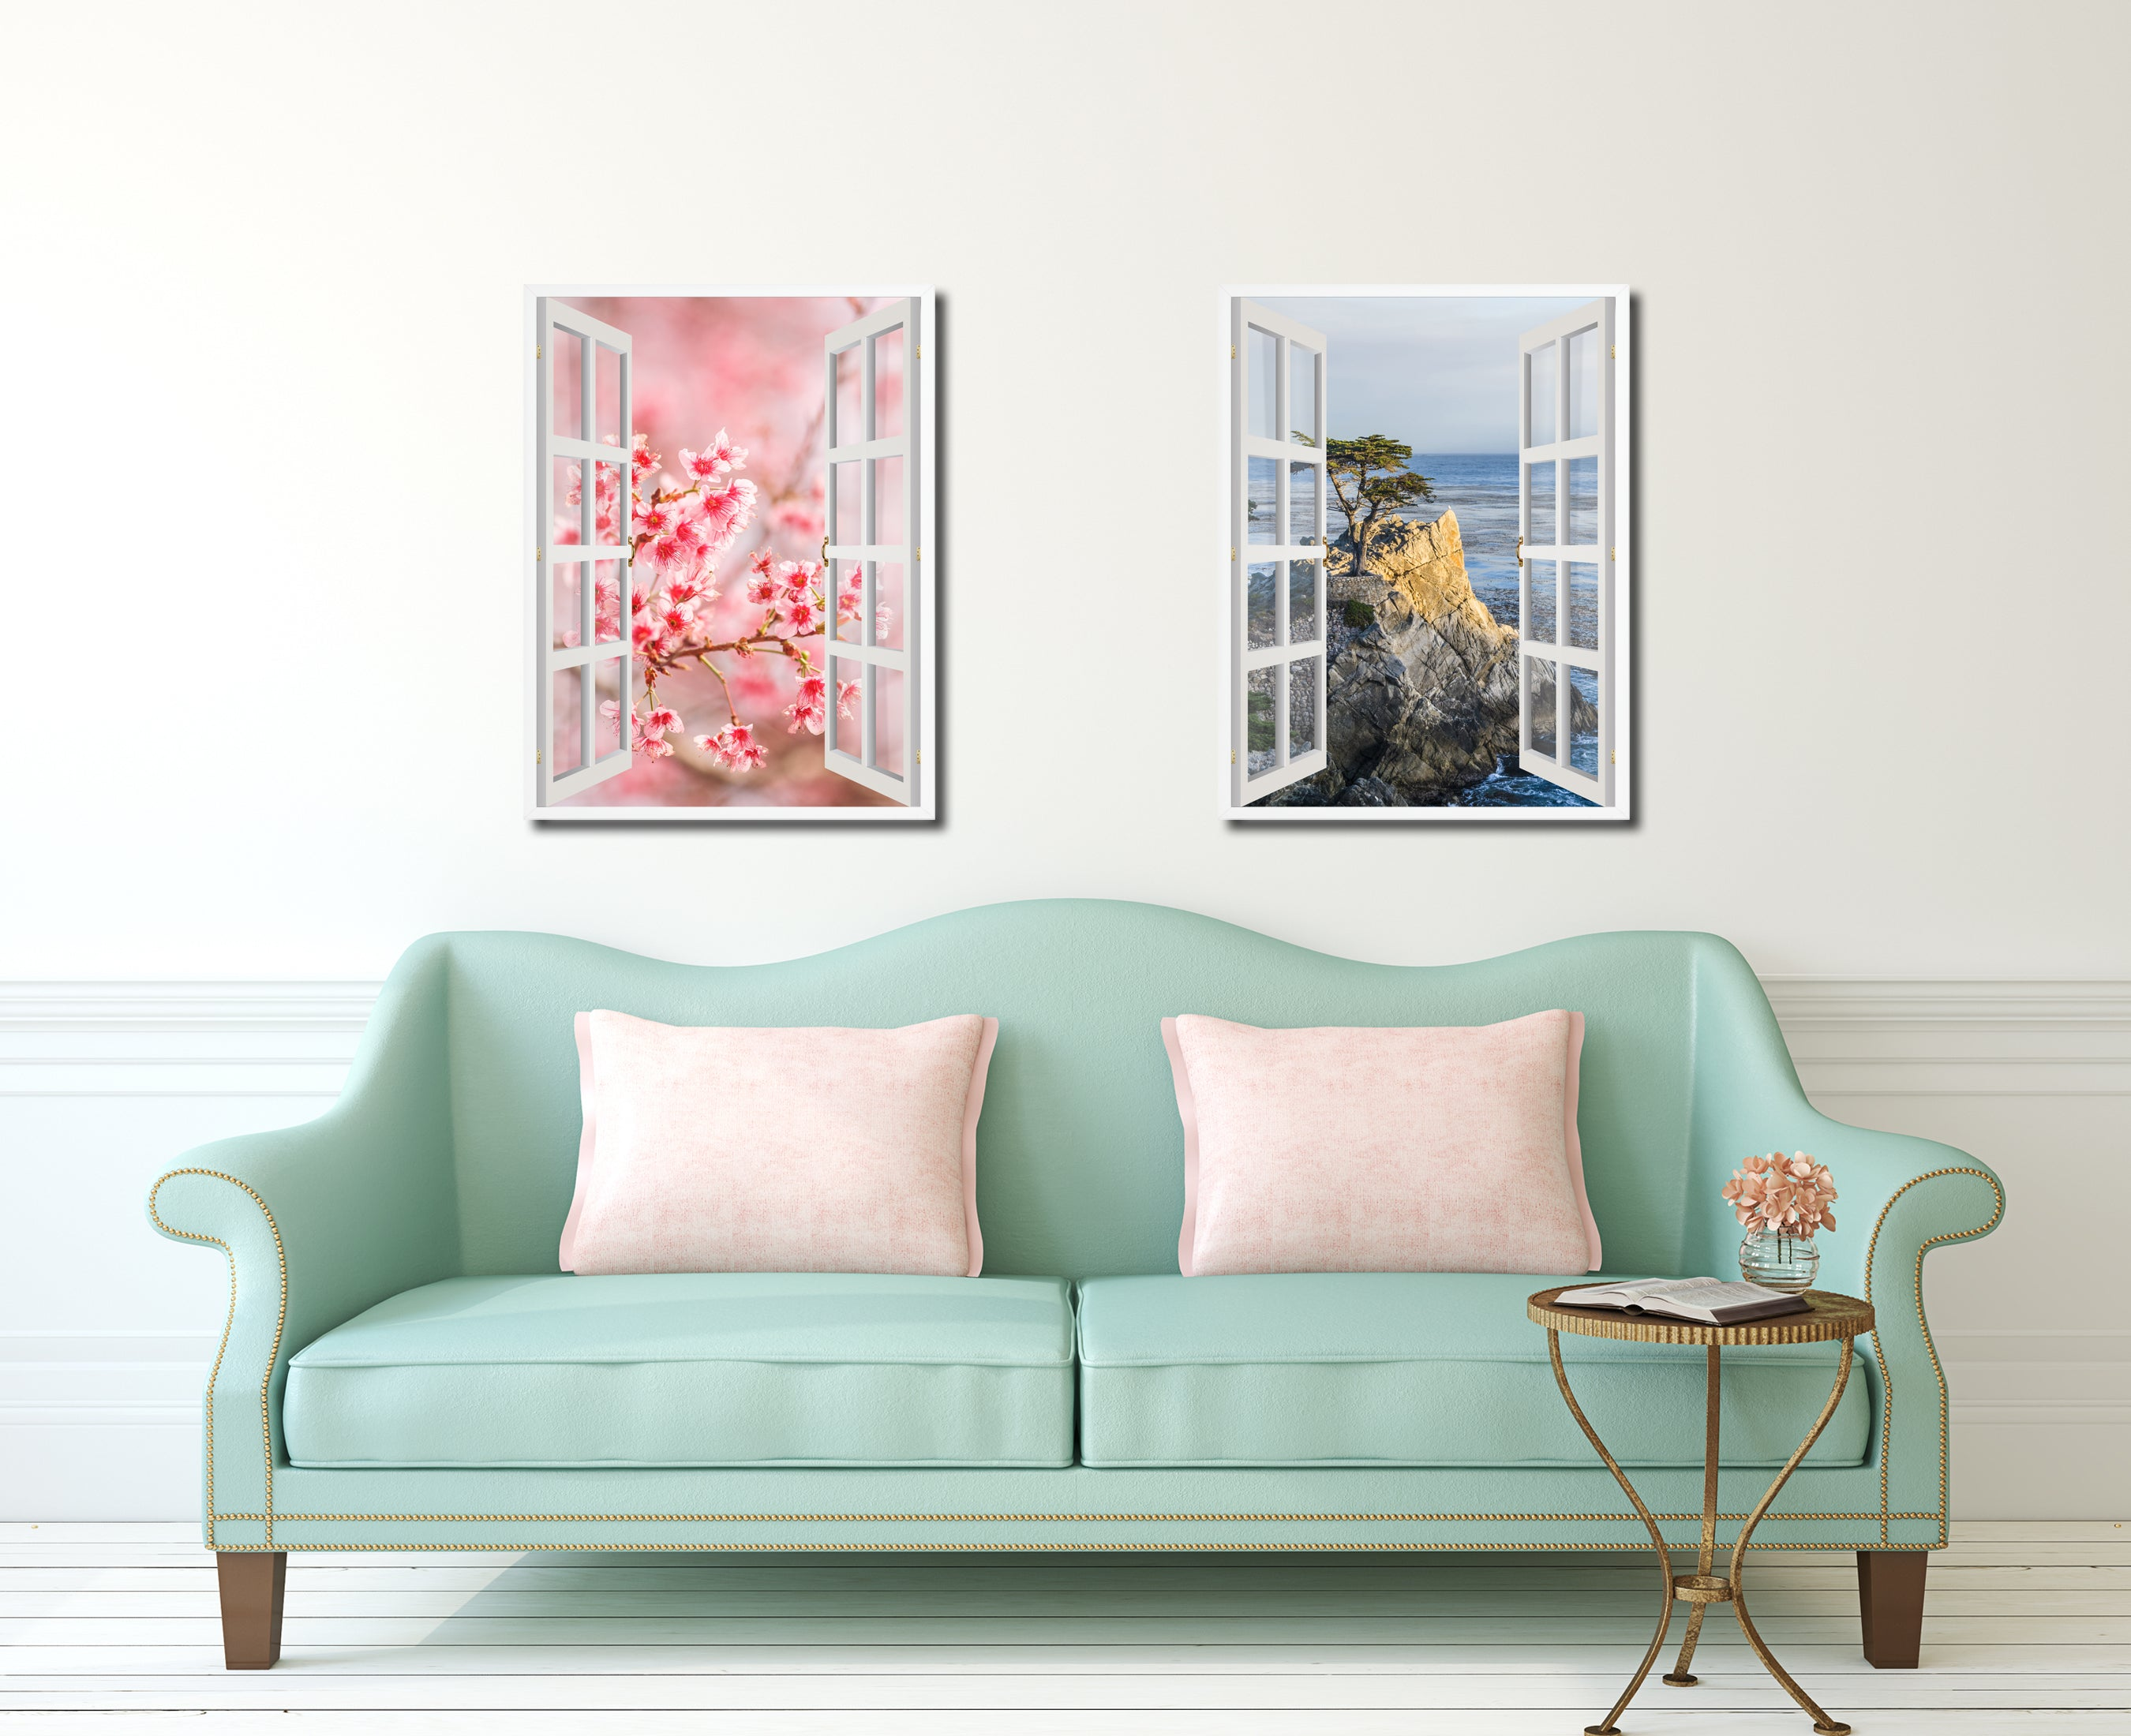 Cherry Blossom Beautiful Flower Picture French Window Canvas Print With  Frame Gifts Home Decor Wall Art